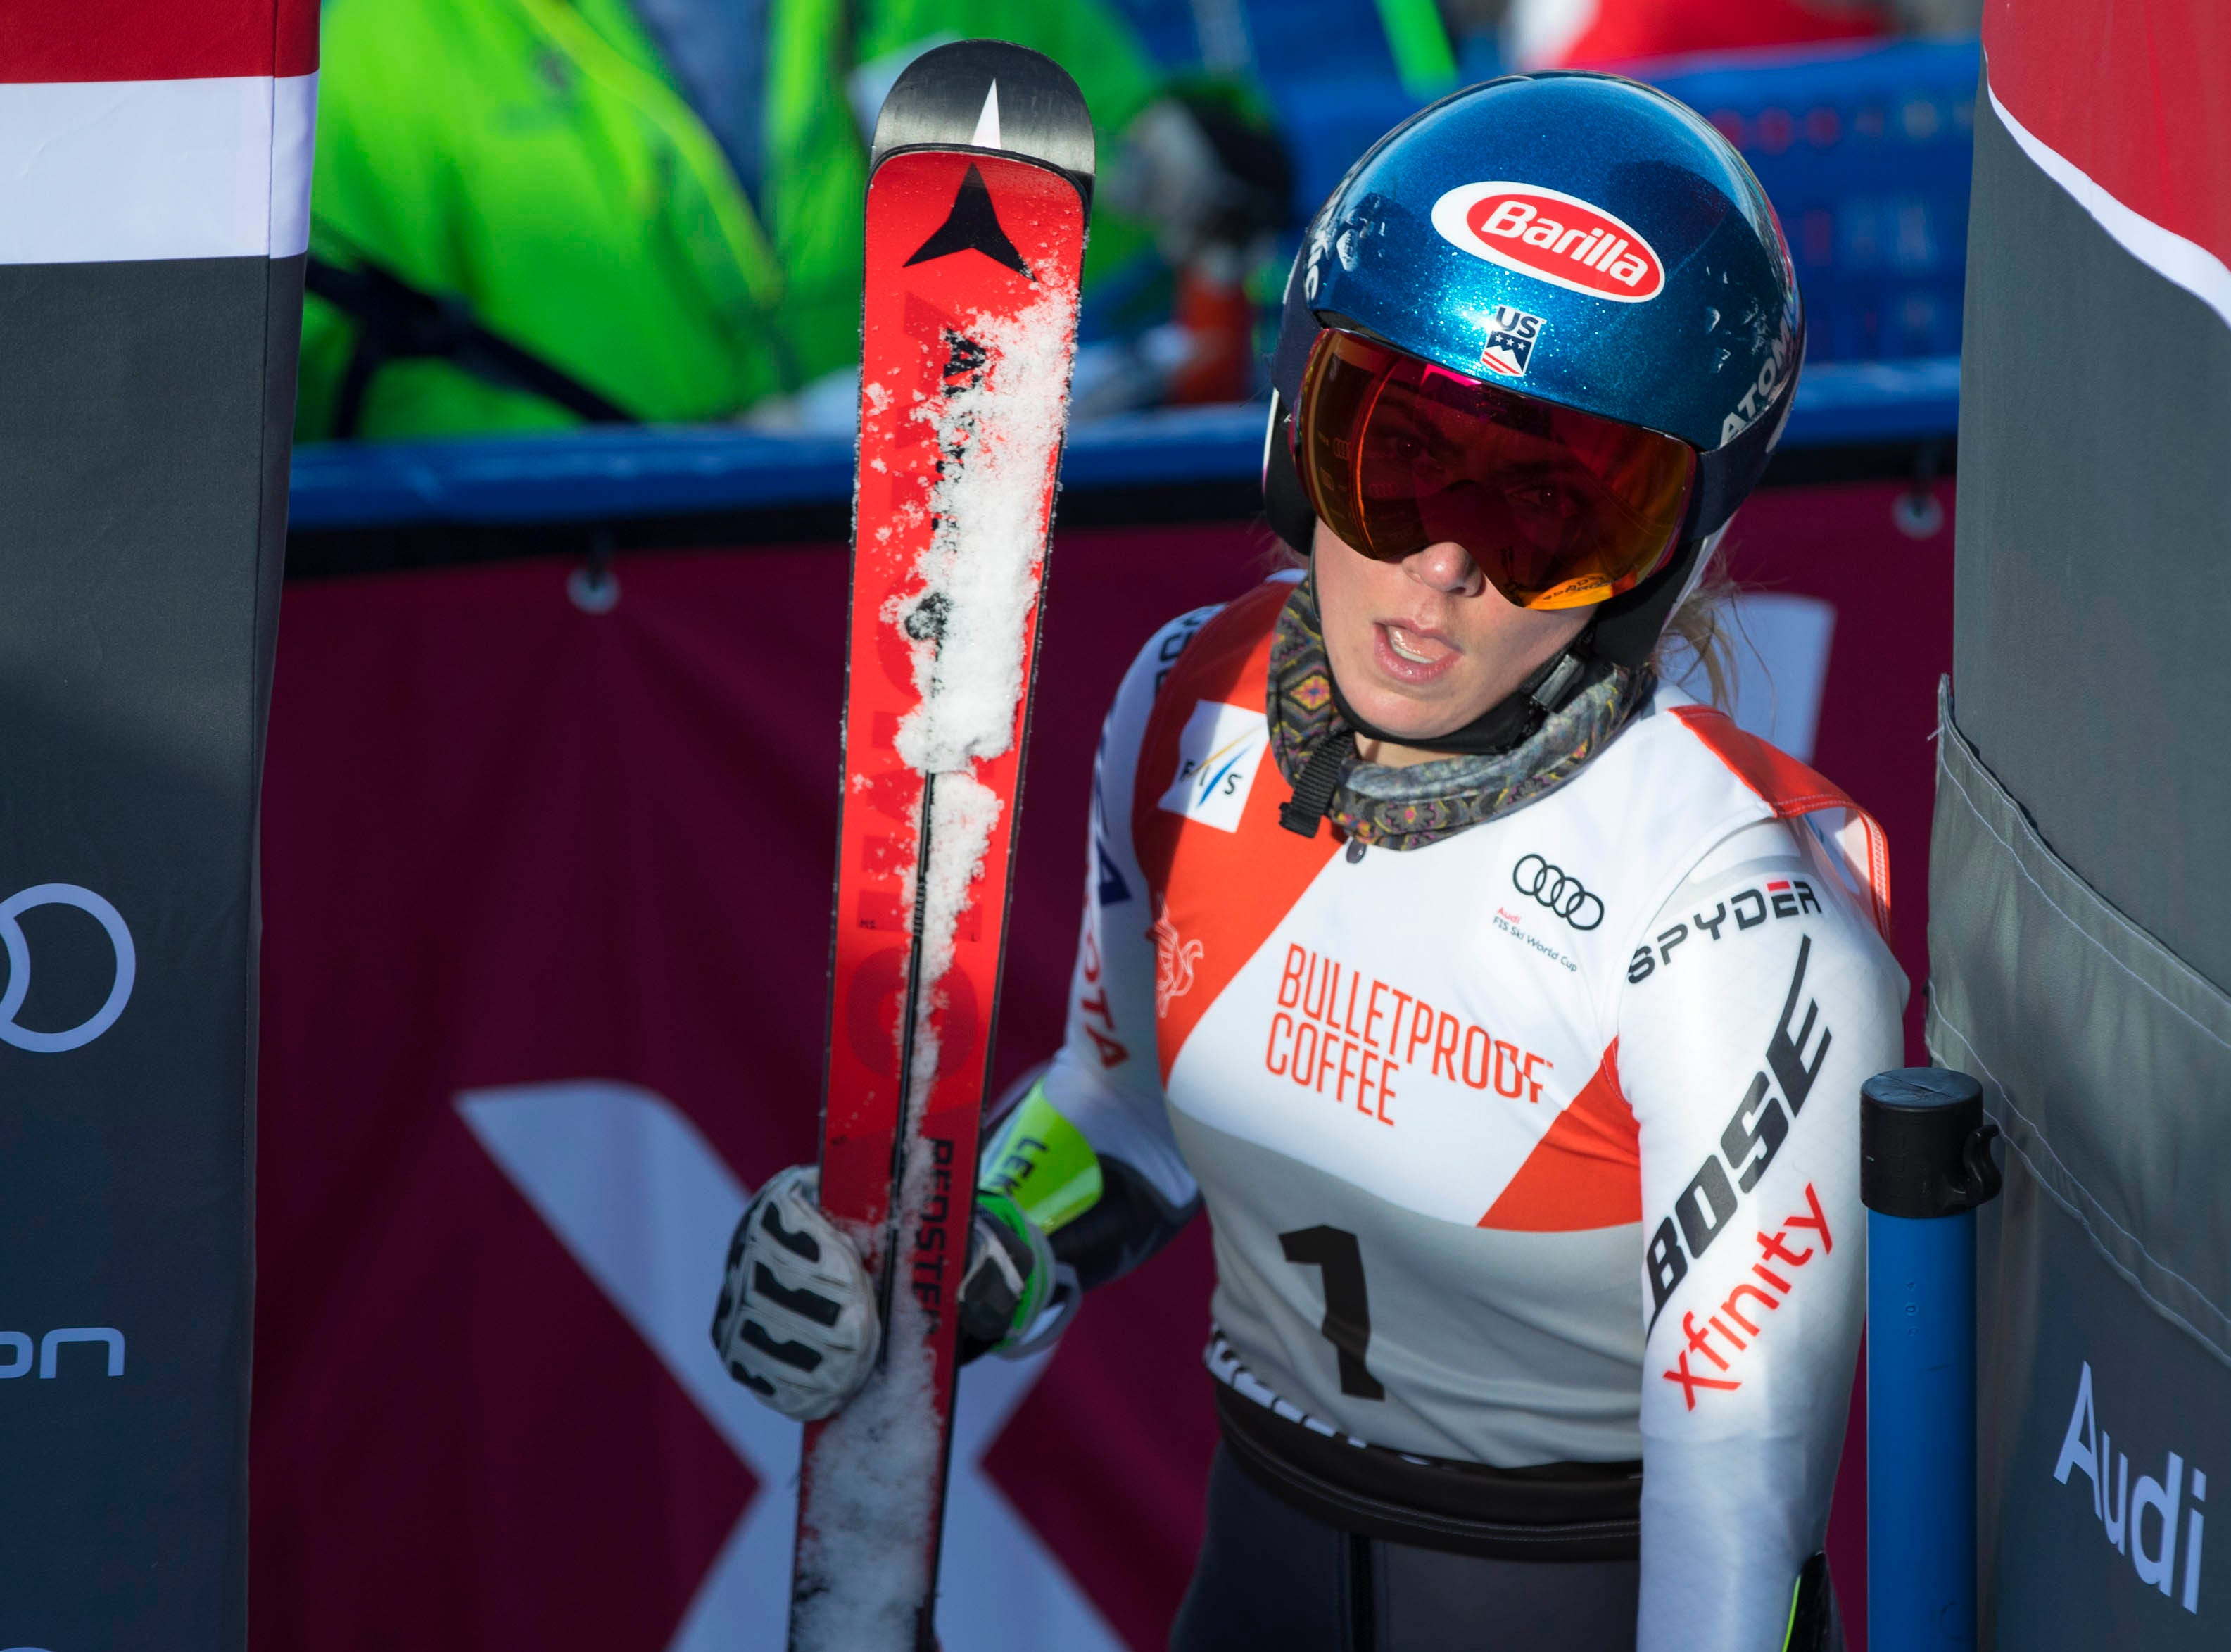 Mikaela Shiffrin of the United States finished fourth in the women's giant slalom of the 2018 Audi FIS Alpine Skiing World Cup races at Killington Resort.